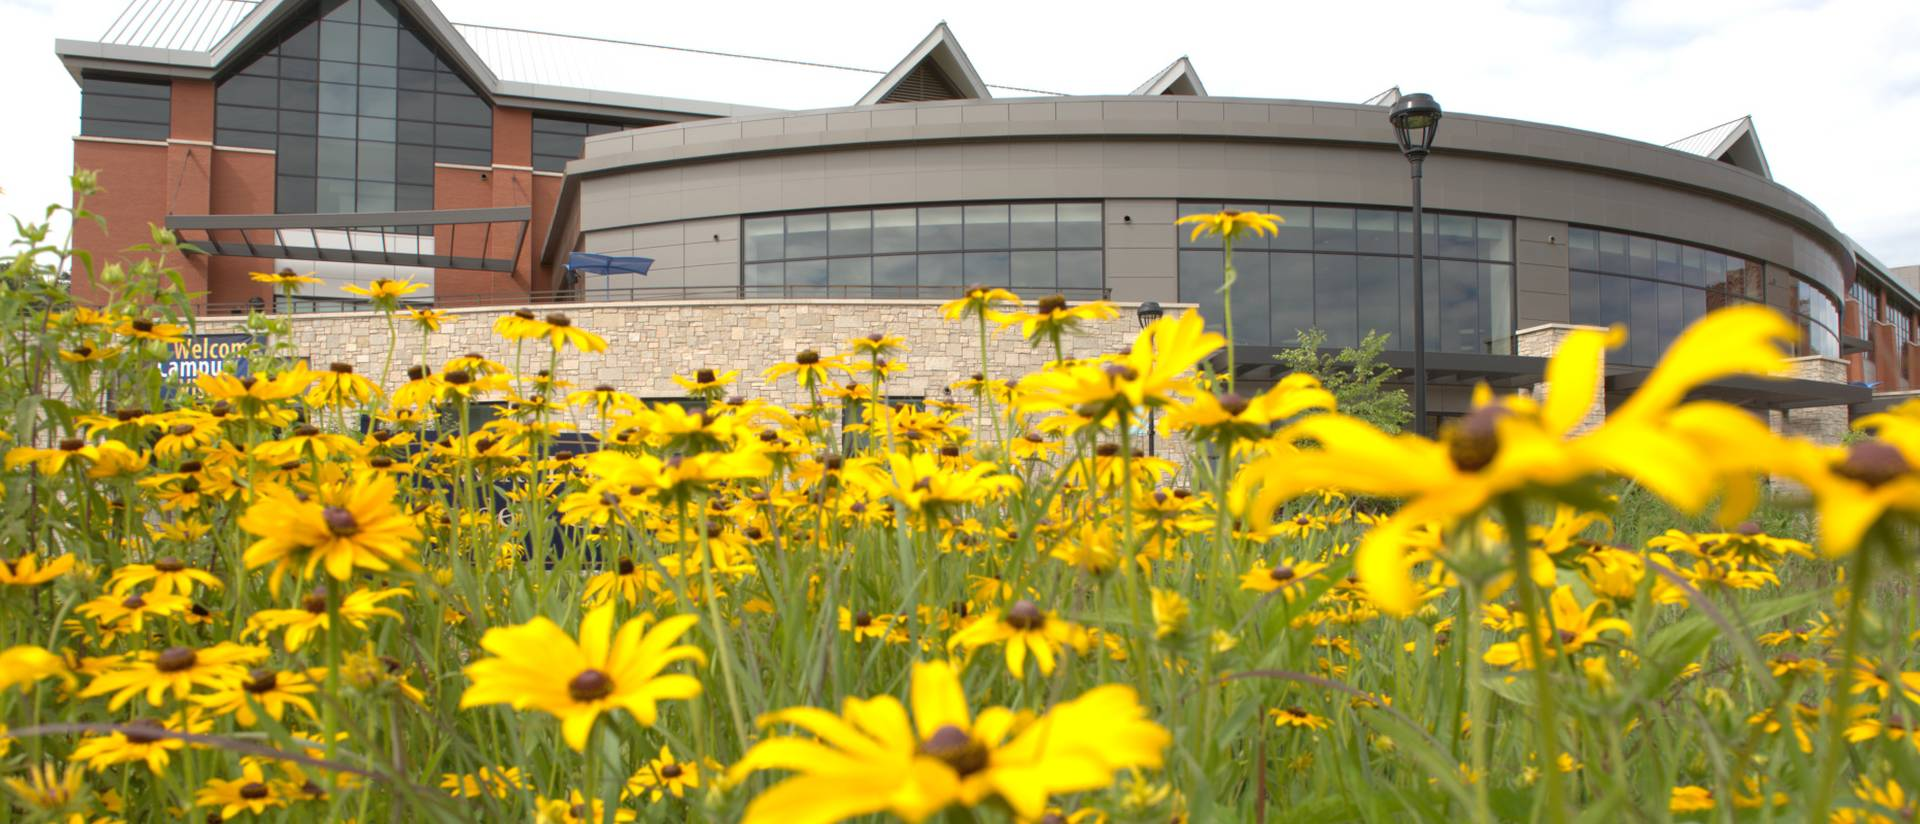 Davies Center and daisies